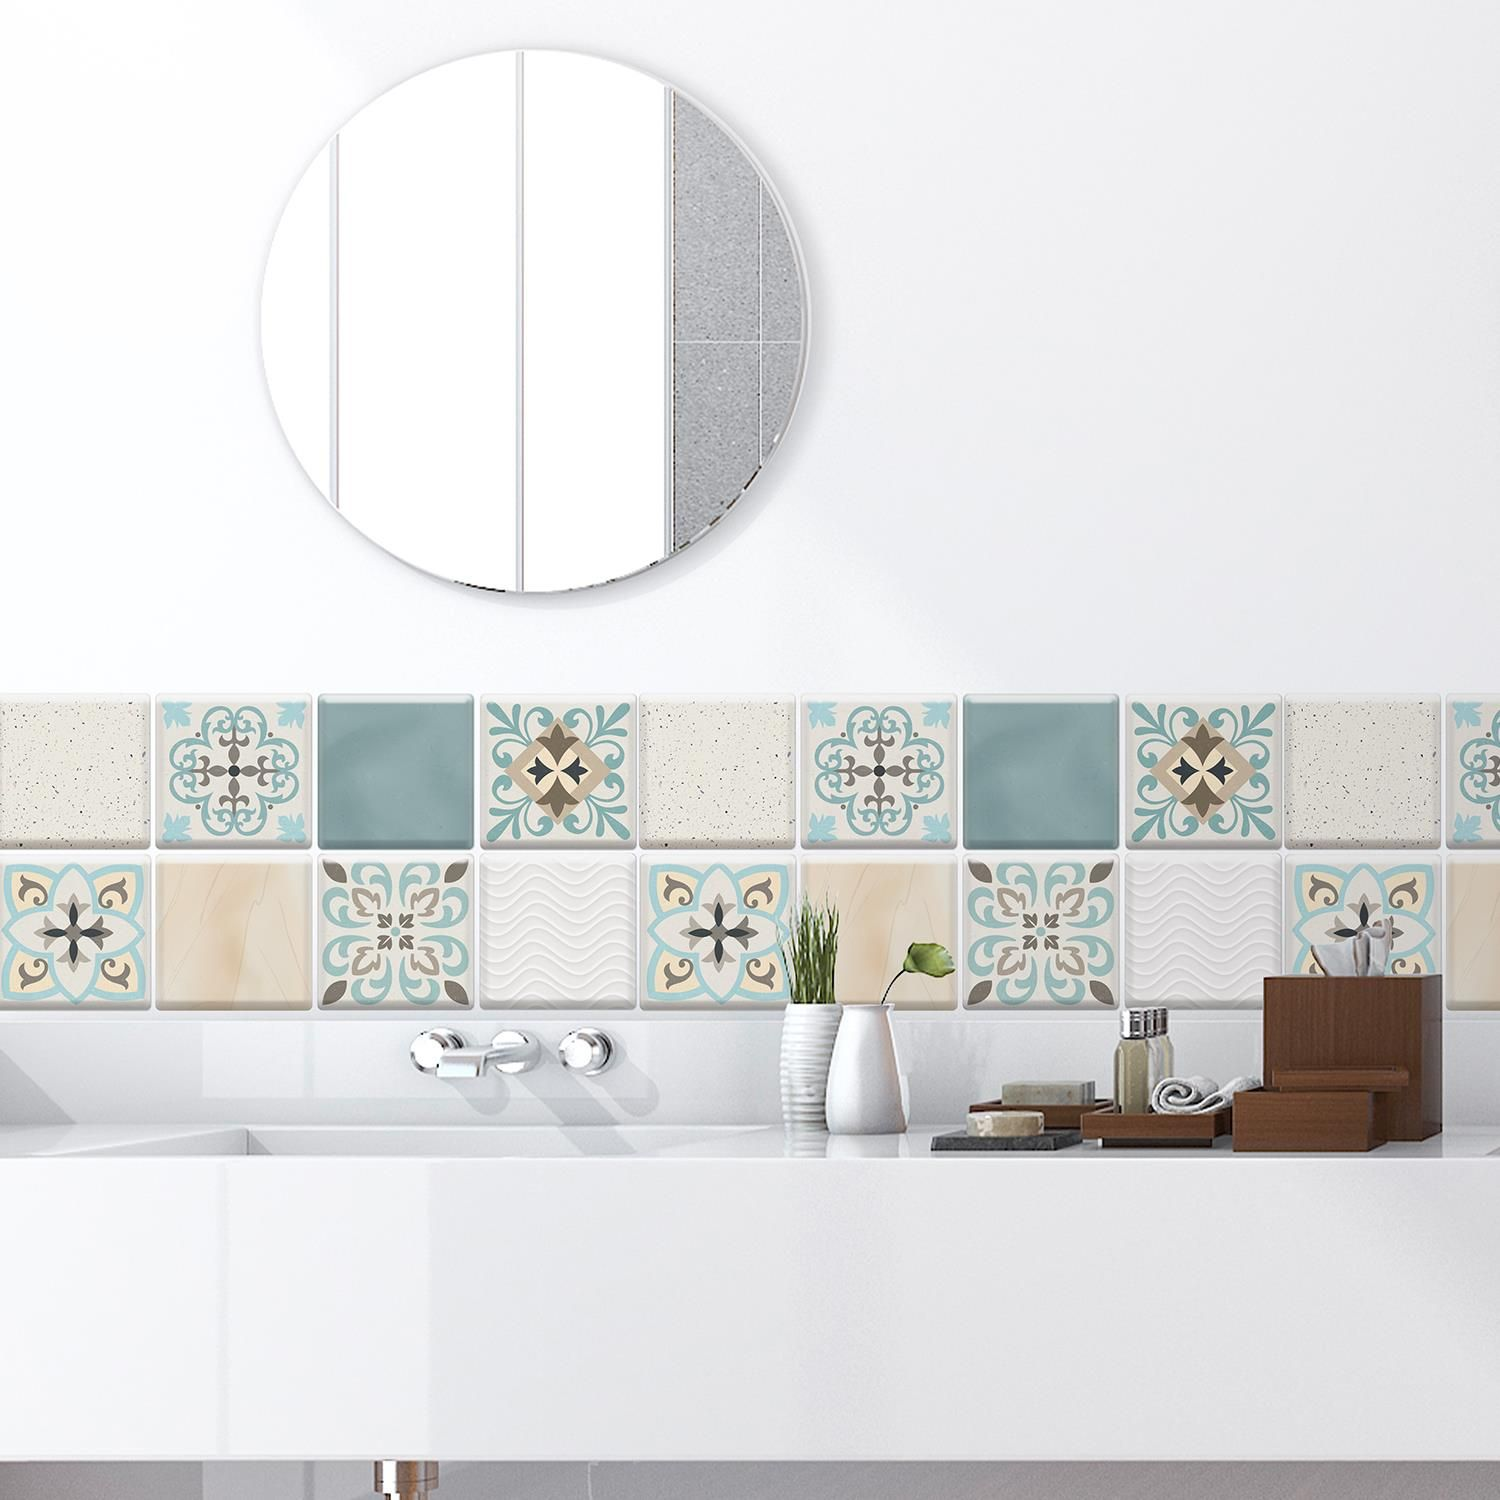 Spanish Retro Mediterranean Crush DIY Self Adhesive Glossy 3D Tile Stickers 15 x 15cm (6in x 6 in) - 16pcs in a pack, 3D Tiles Wall Stickers, Kitchen, Bathroom, Living room, peel and stick